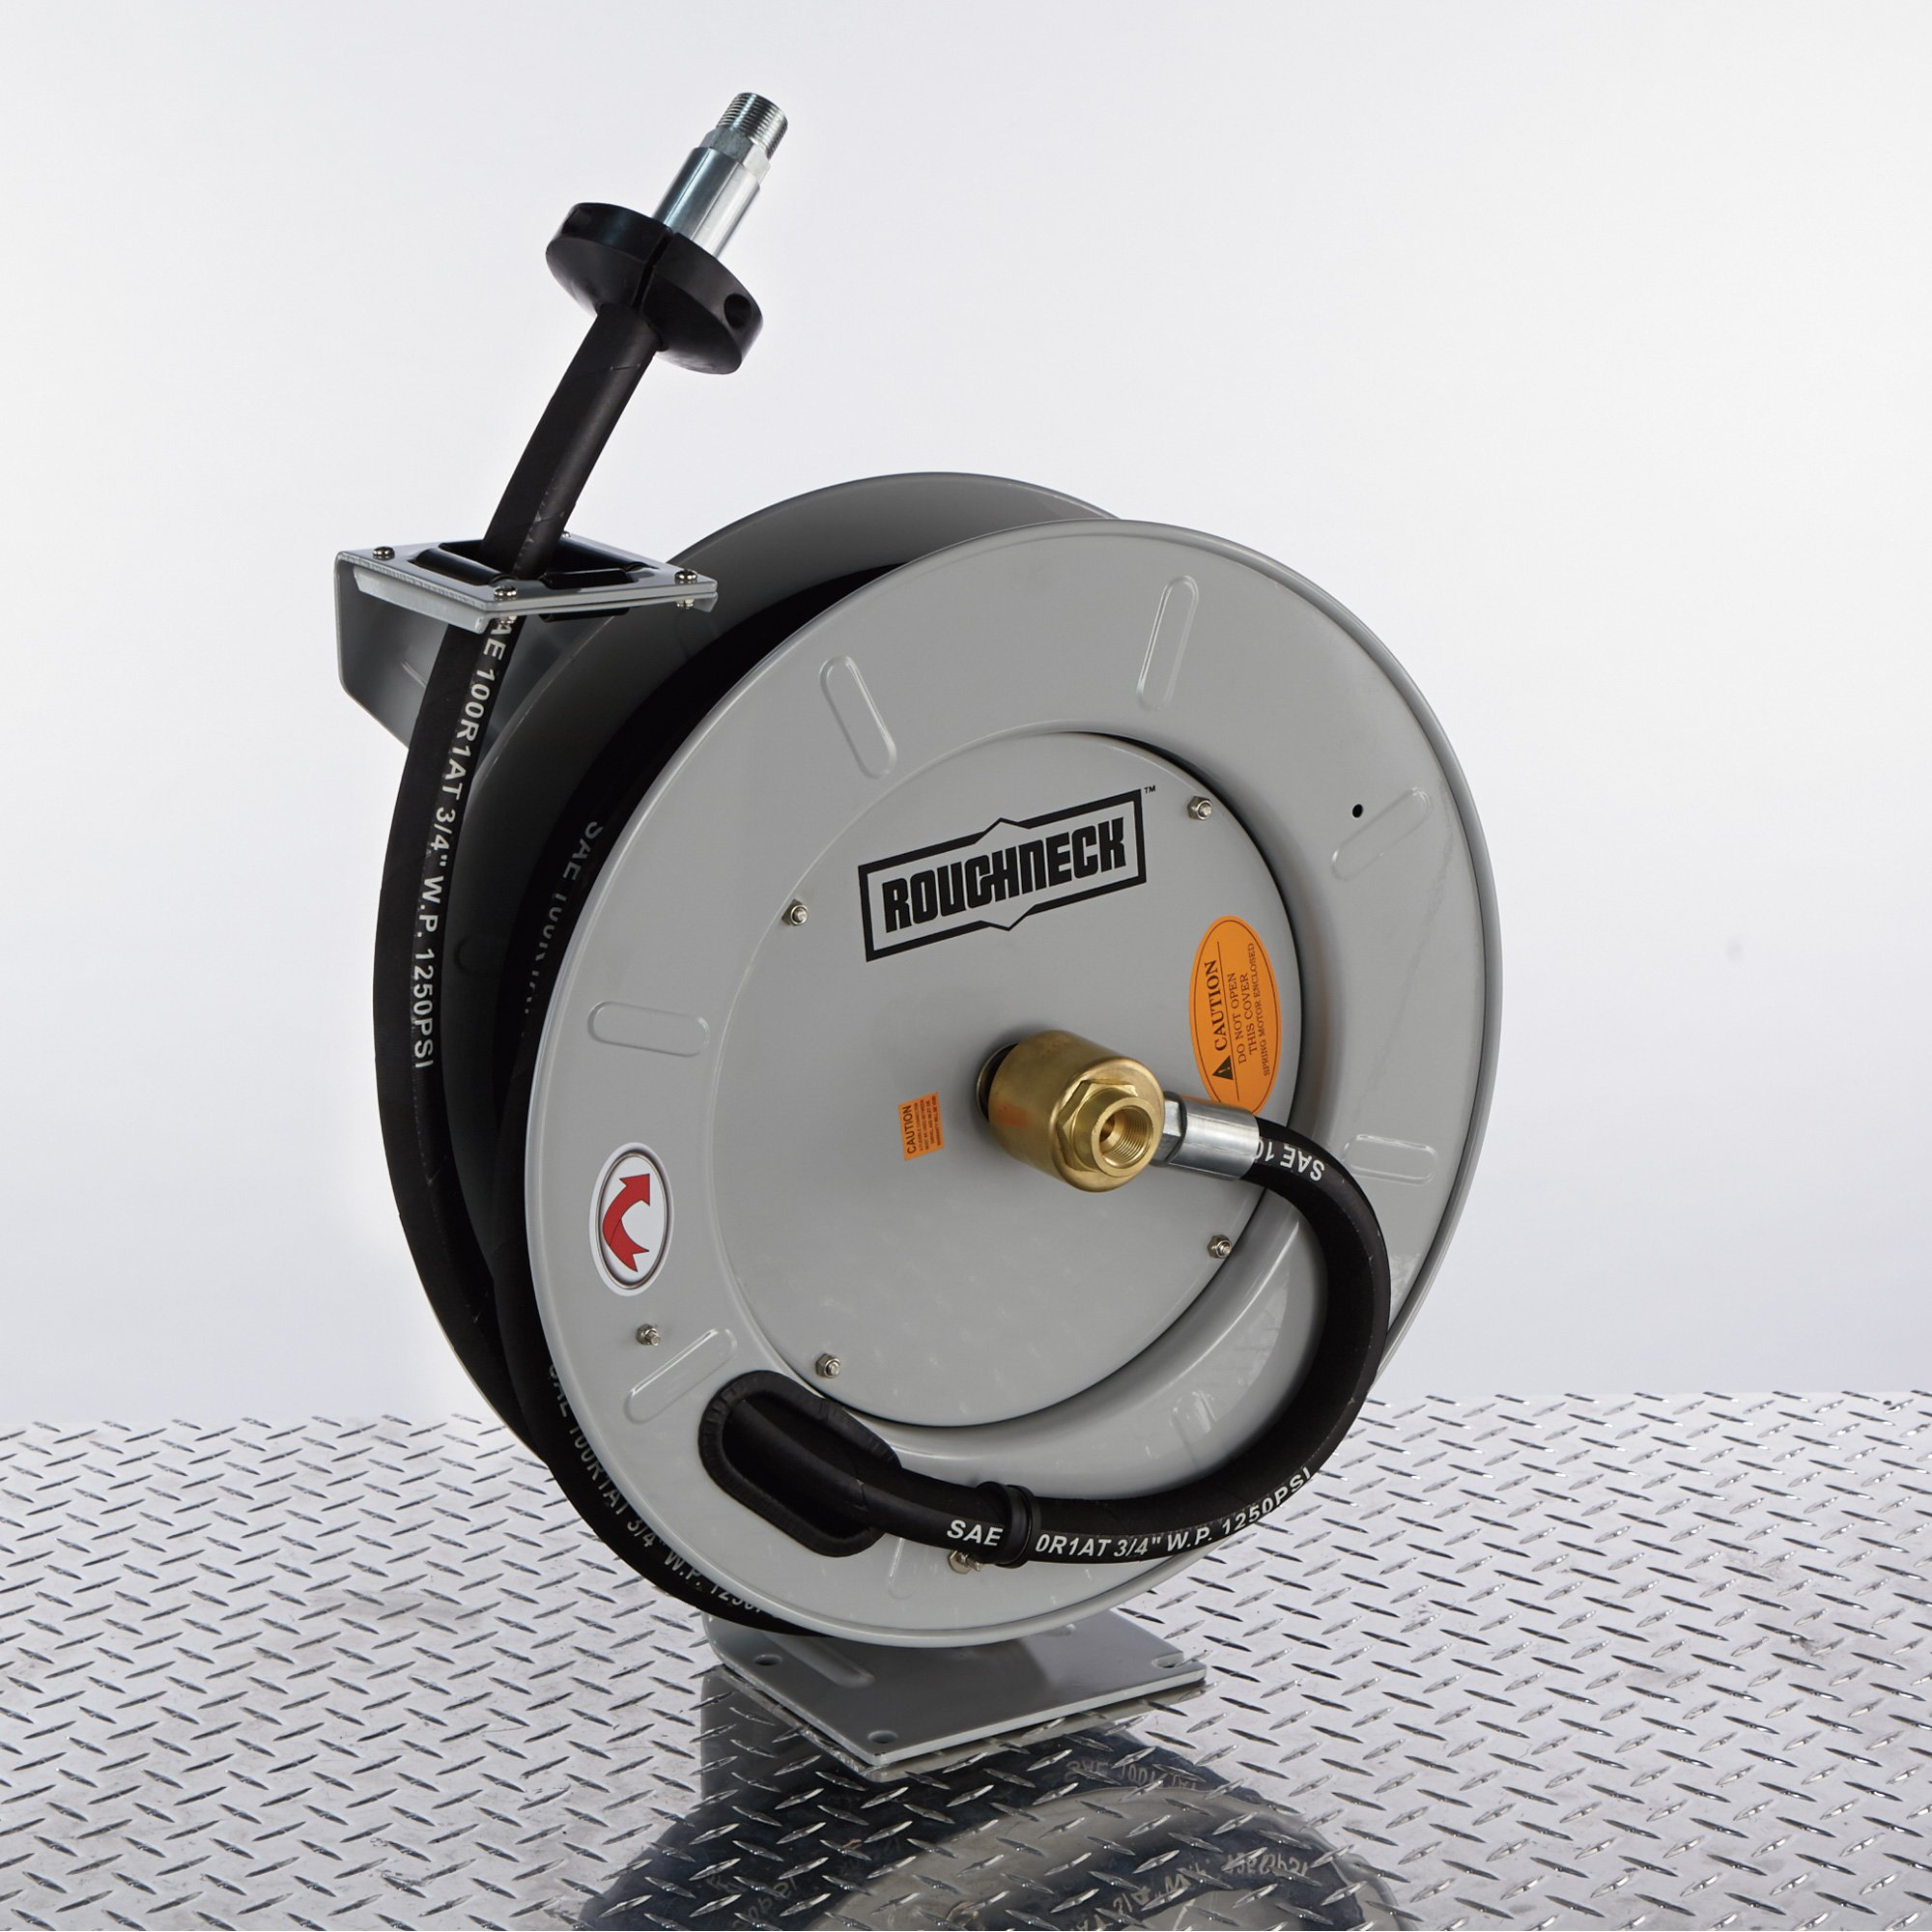 Roughneck Spring-Rewind Fuel and Oil Hose Reel with Hose - 1250 PSI